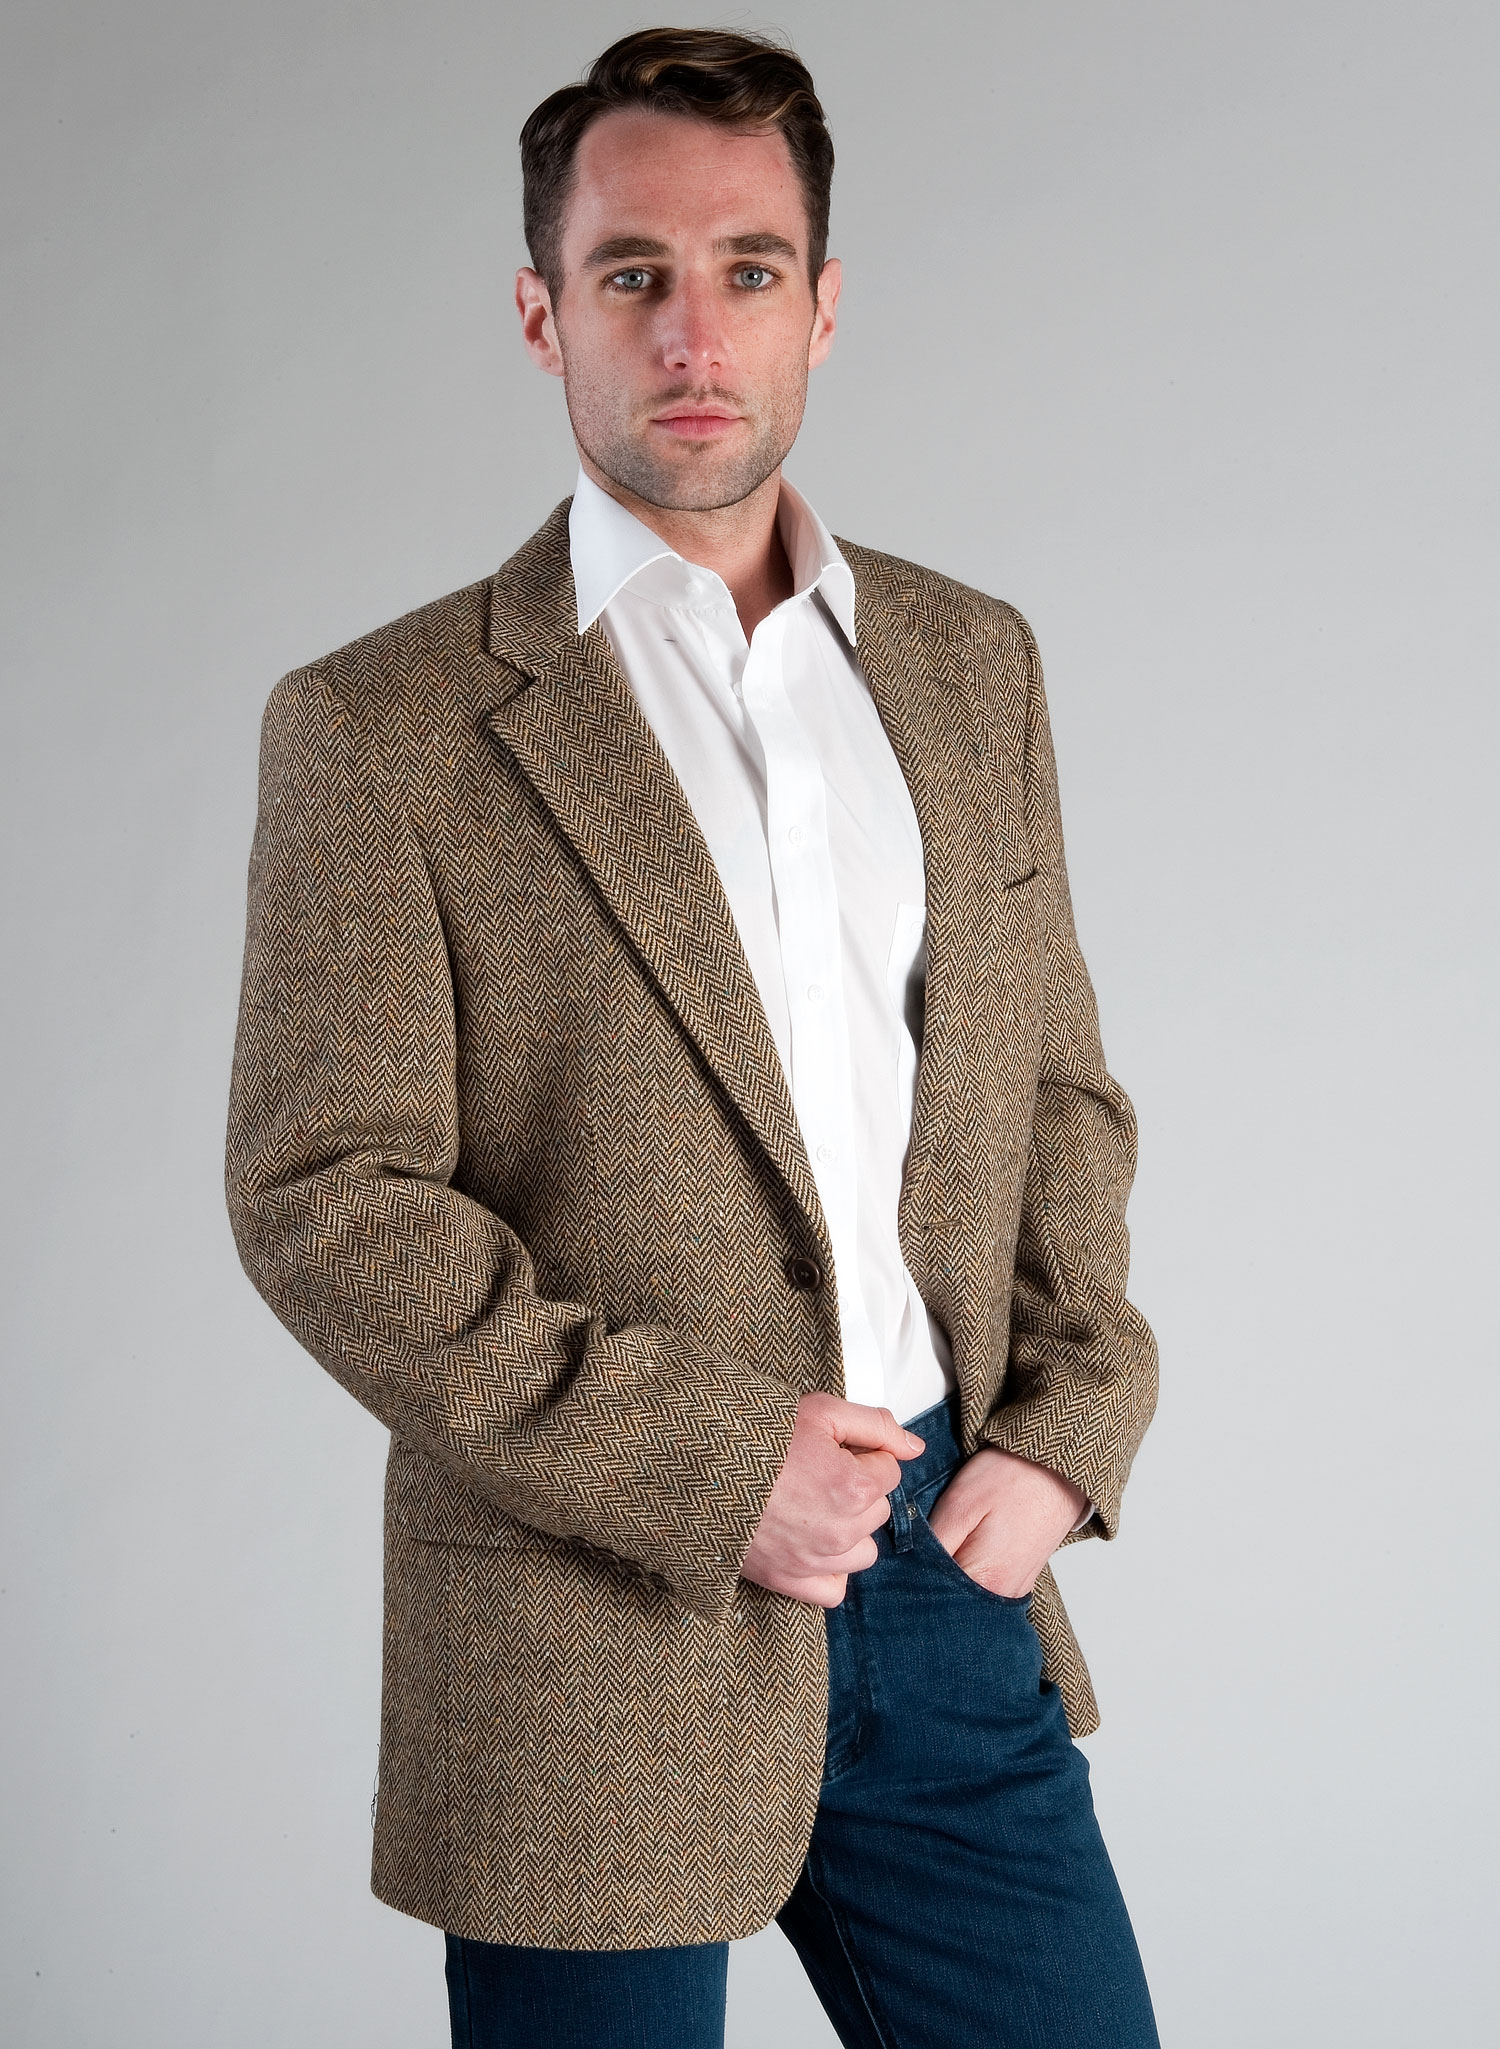 Images of Tweed Sports Jacket - Fashion Trends and Models